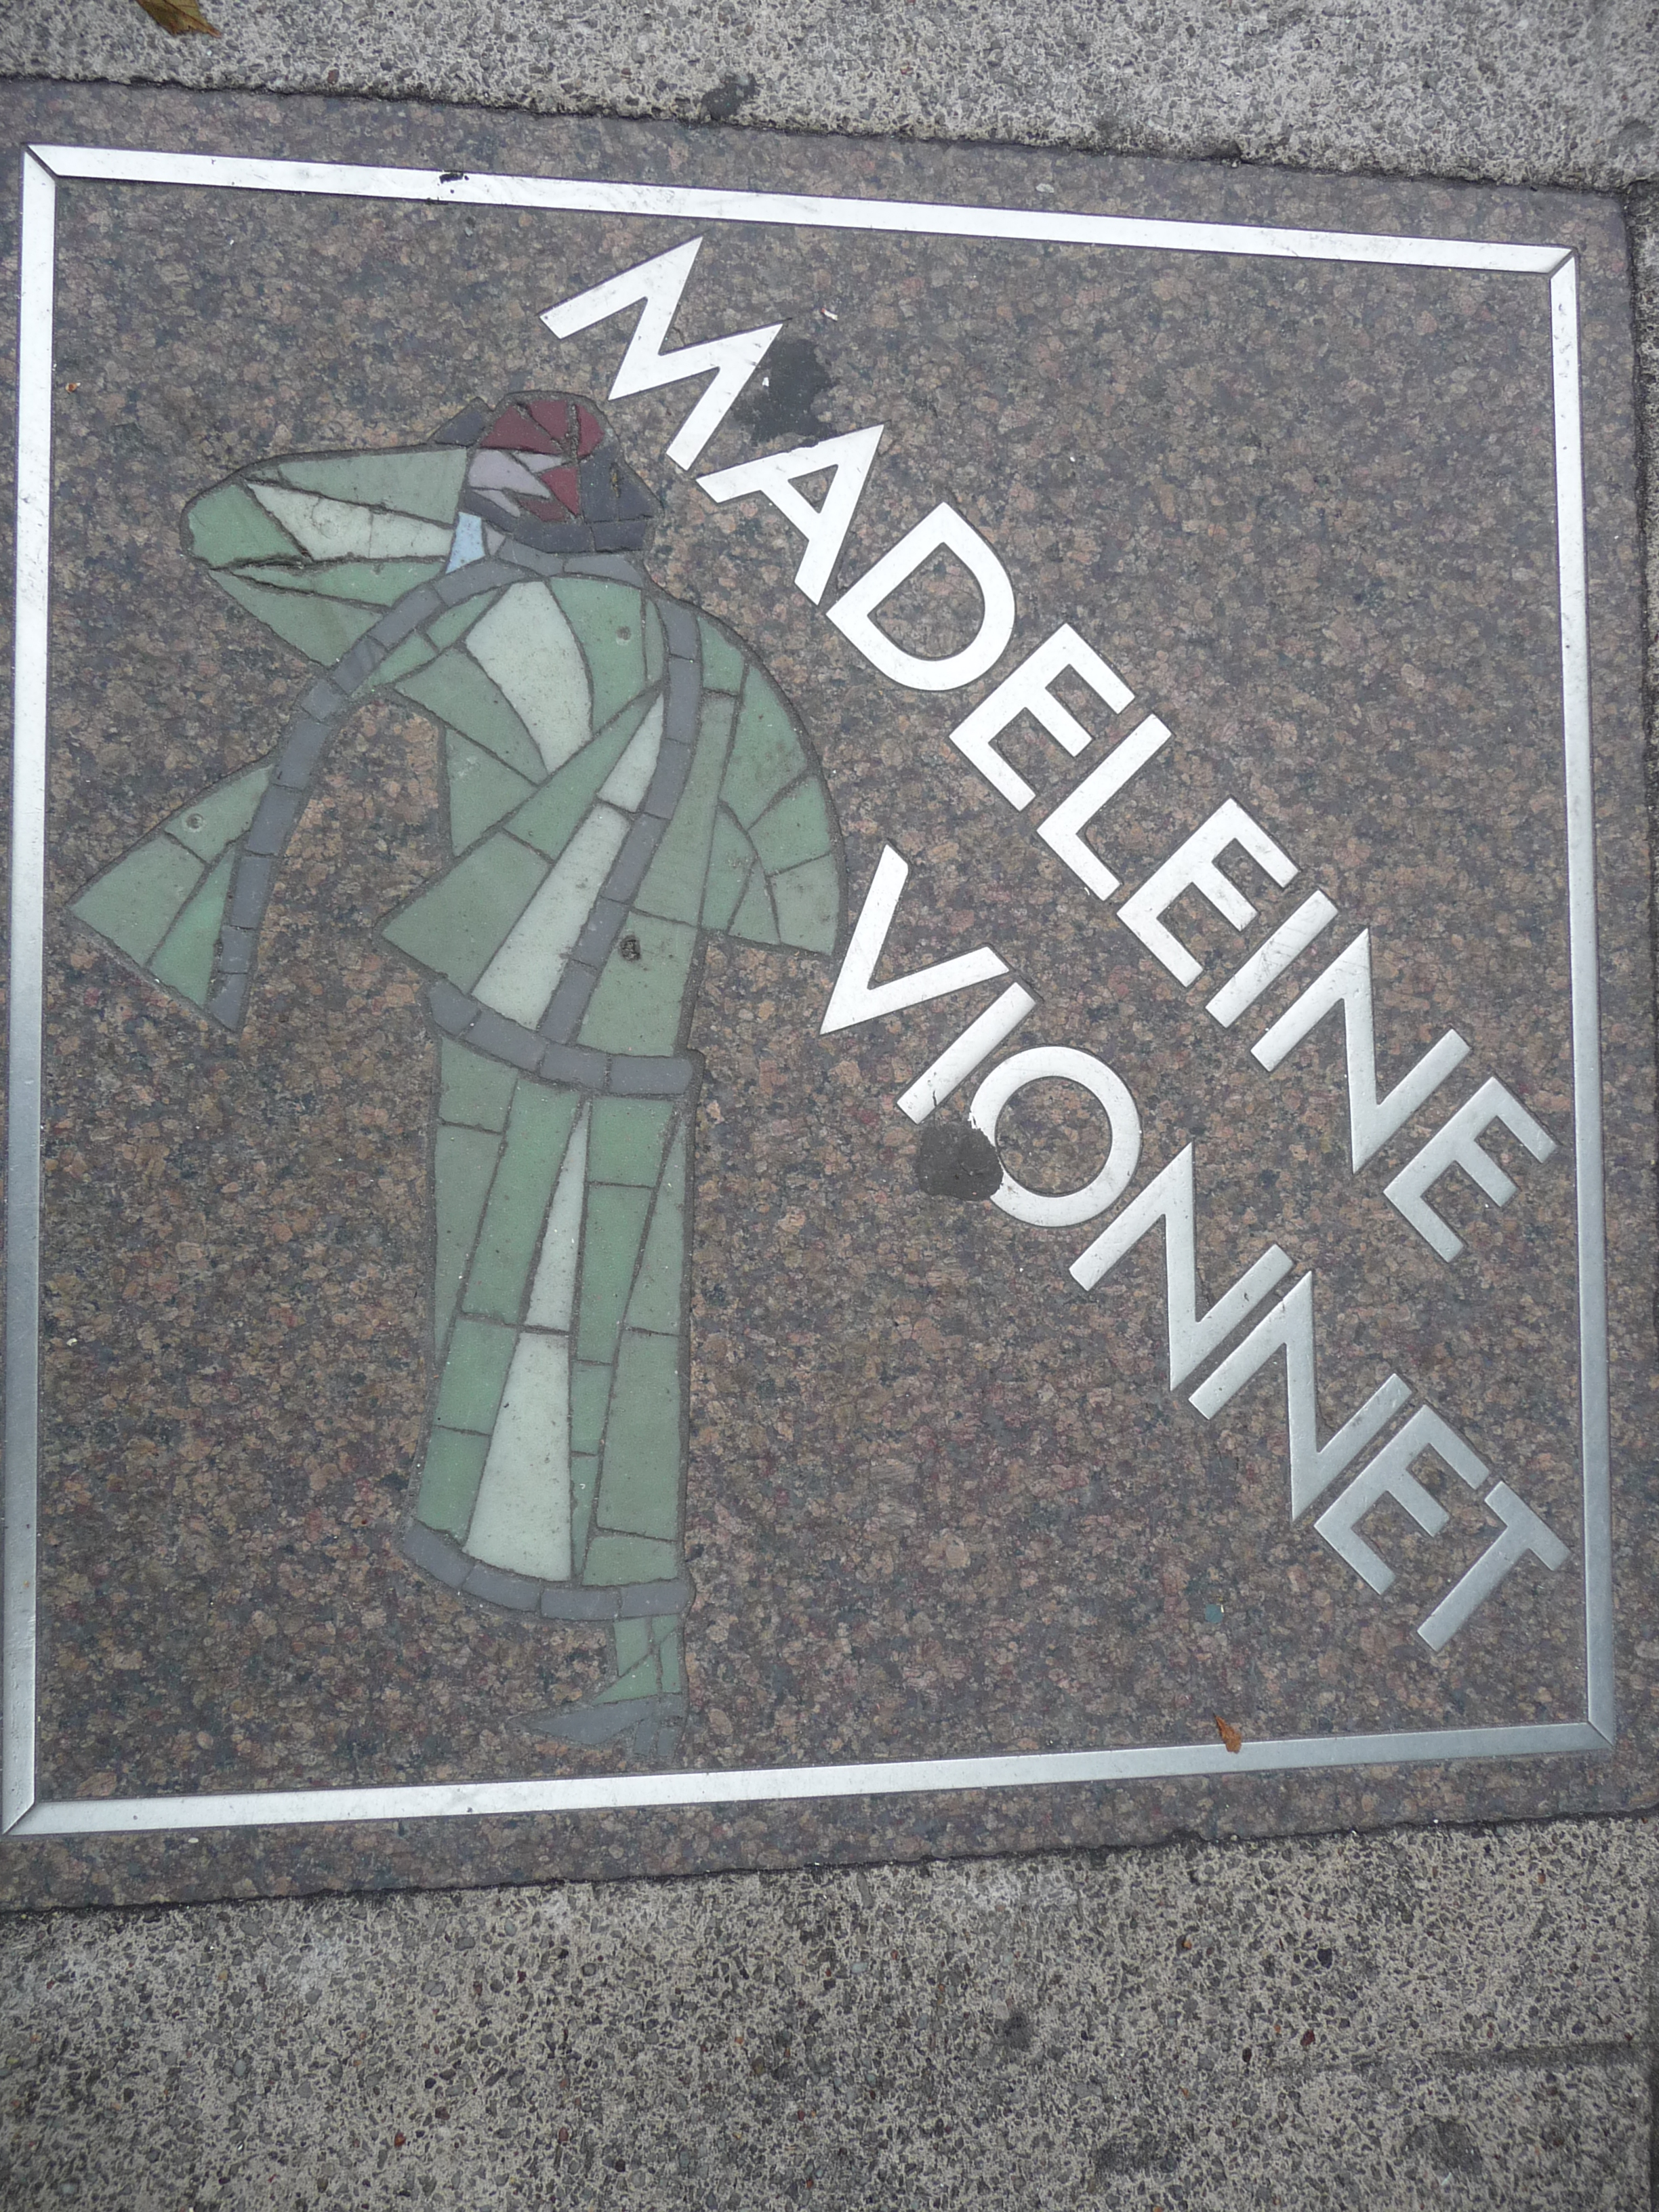 Commemorative tile in Paris, dedicated to Madeleine Vionnet.